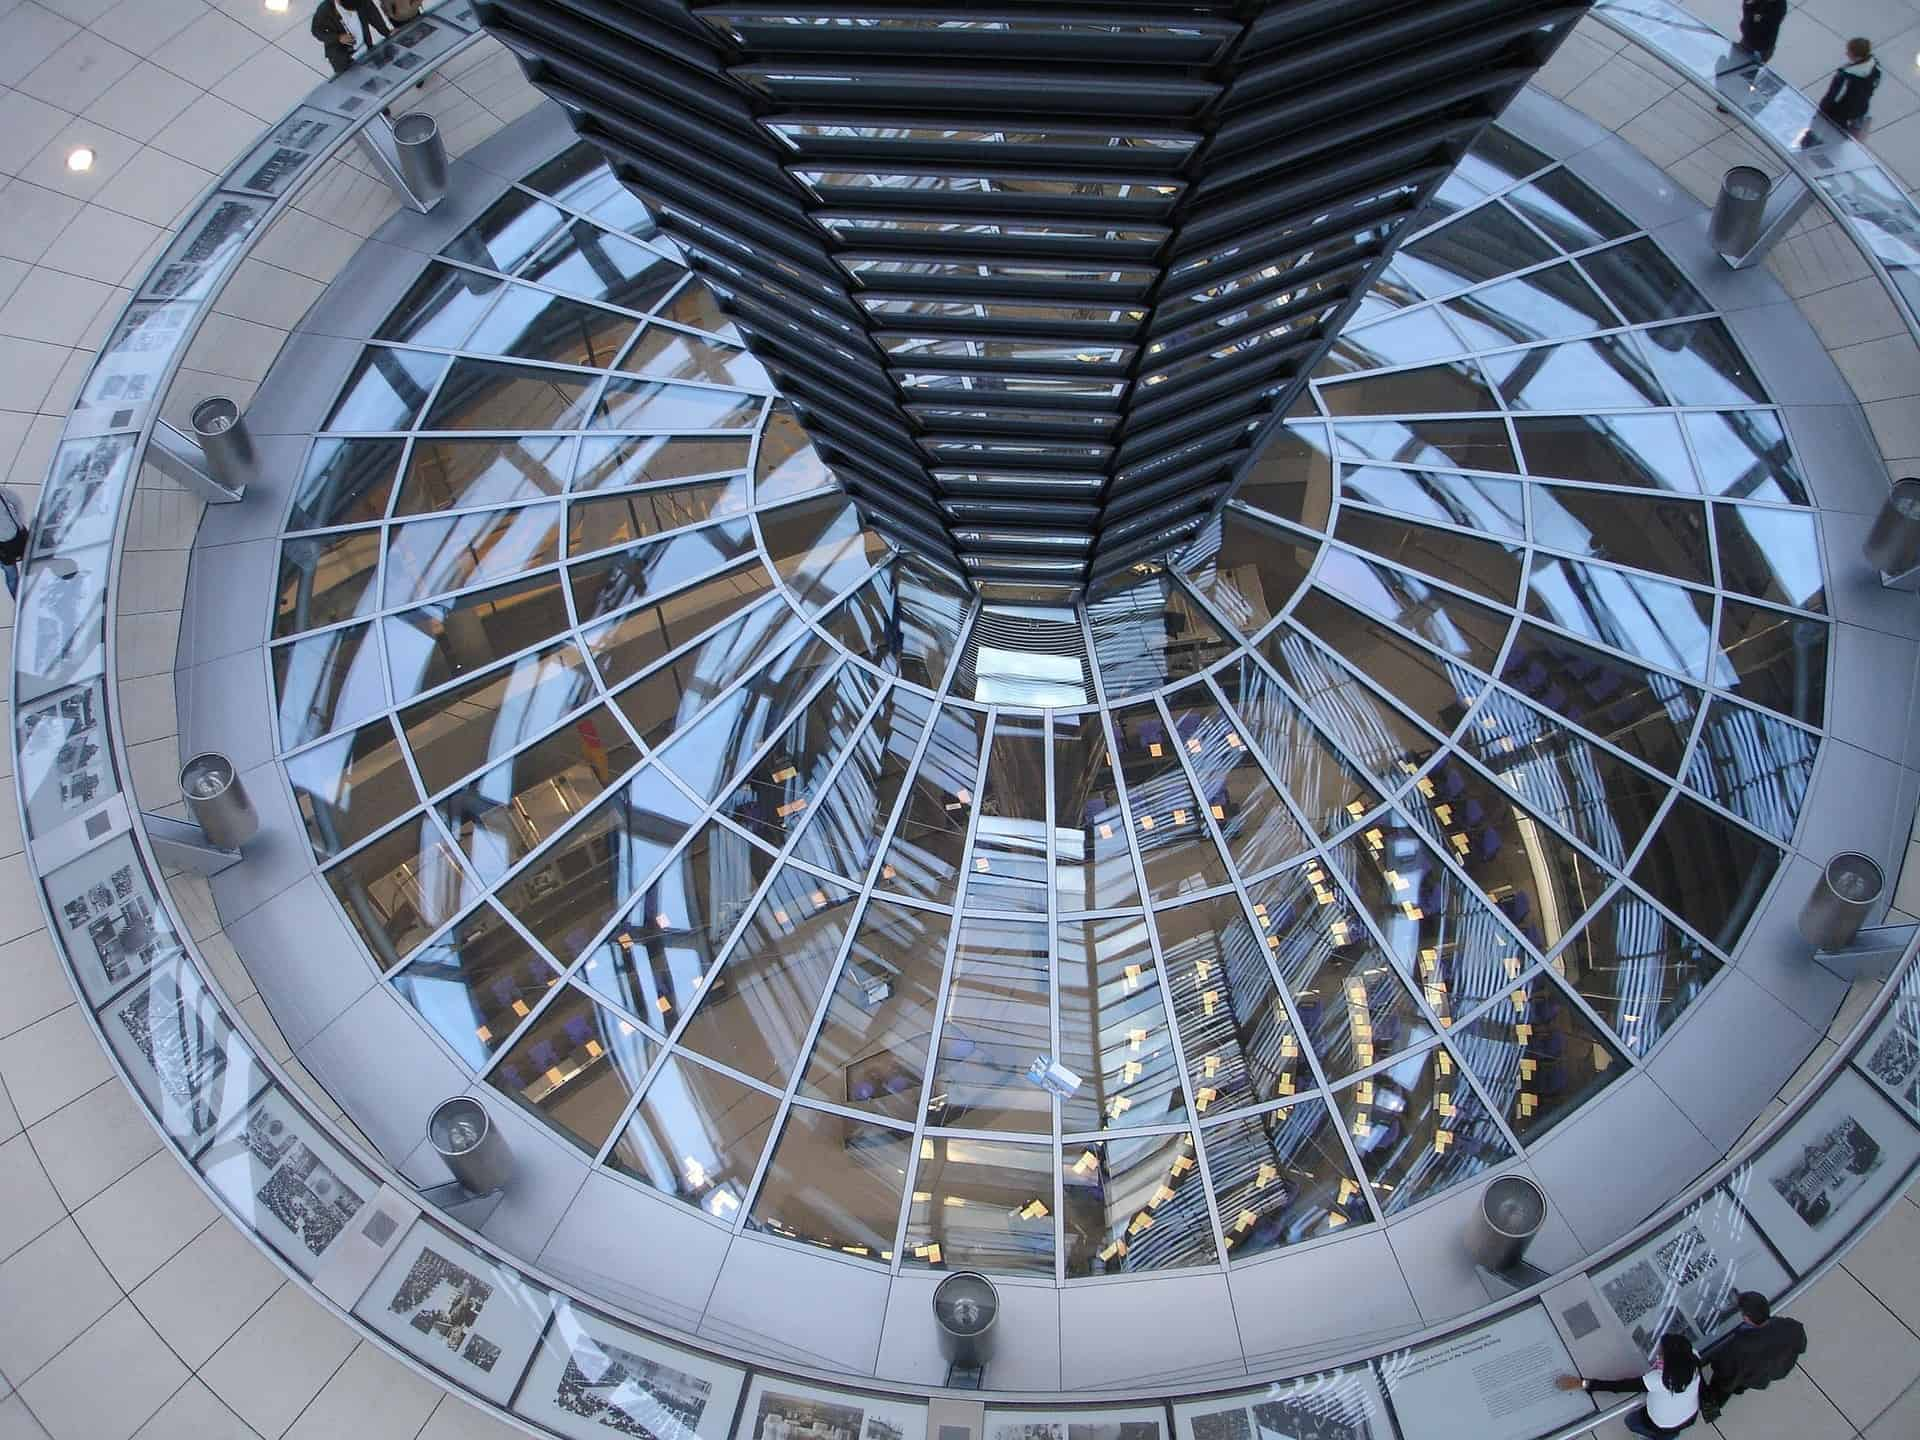 The Reichstag's glass dome